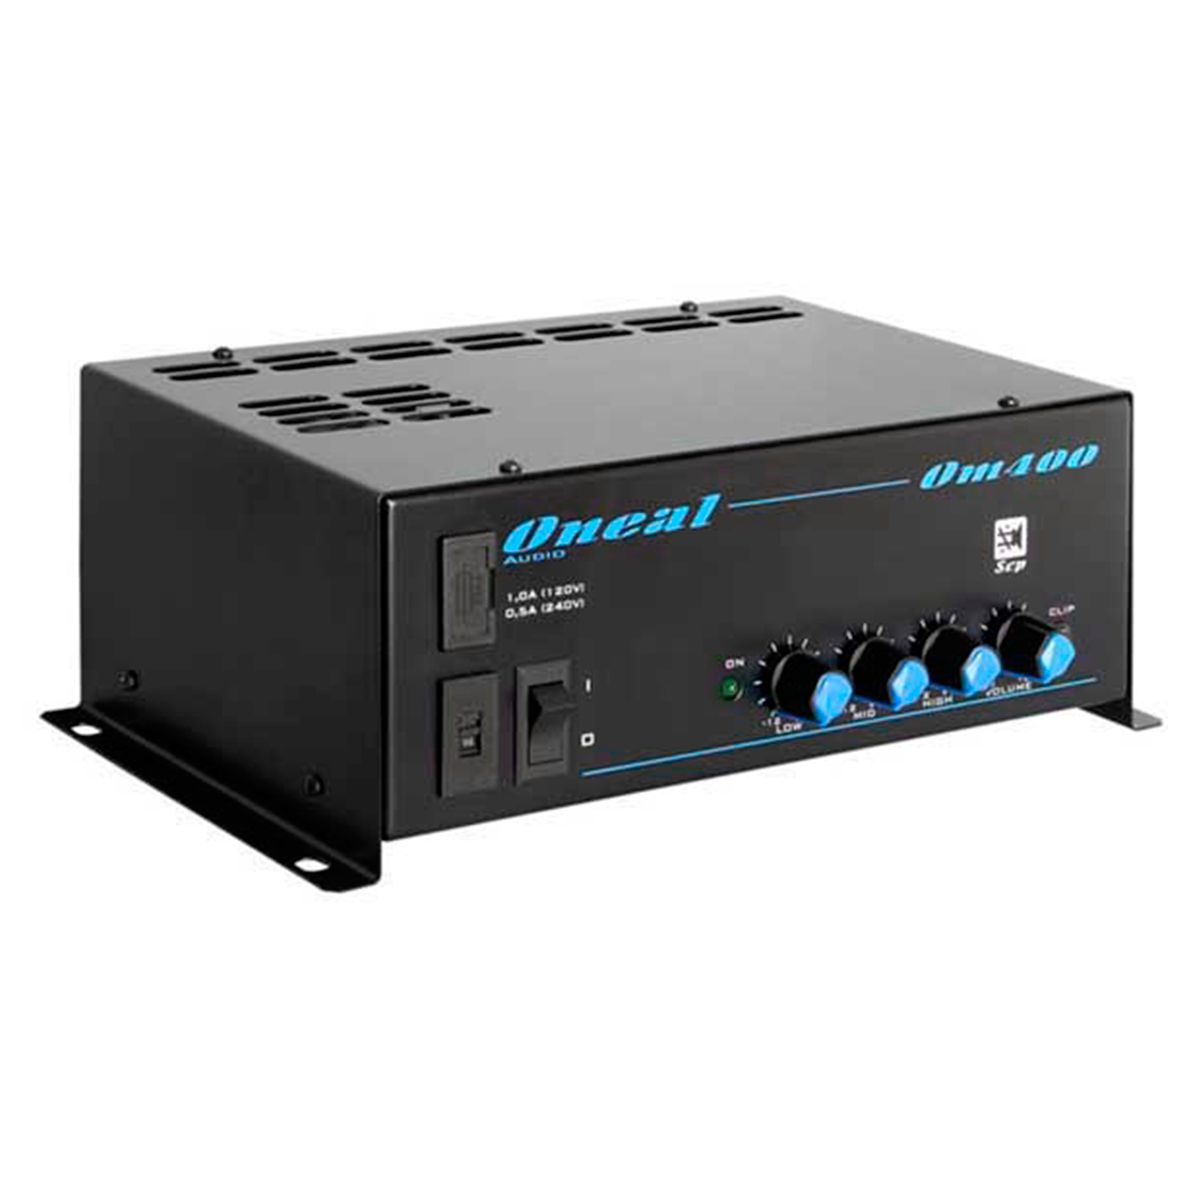 OM400 - Cabe�ote Multiuso 1 Canal 100W OM 400 - Oneal